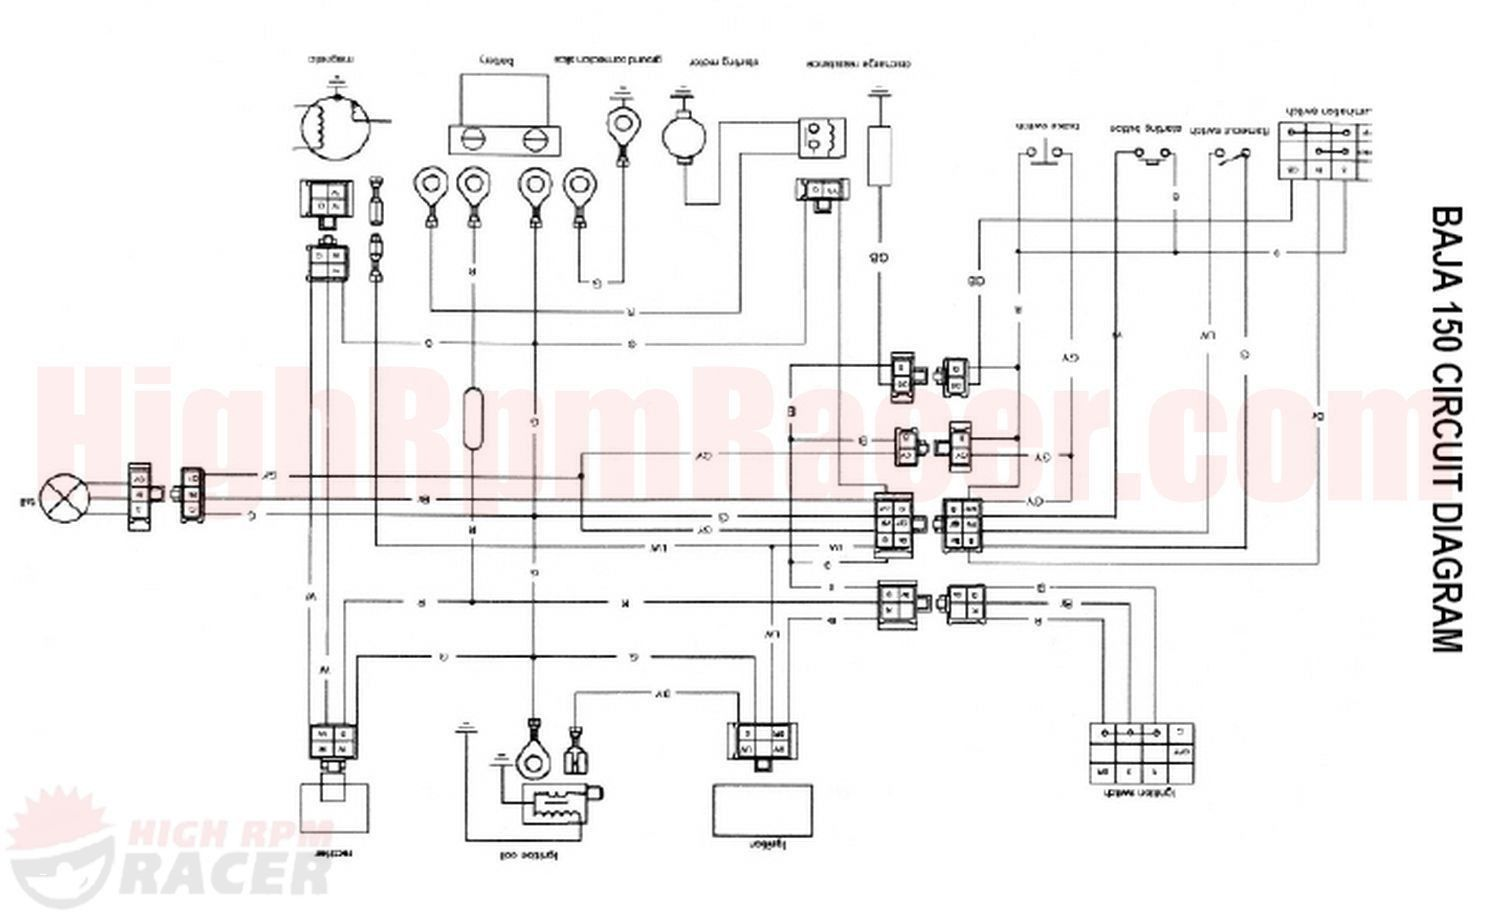 110 Atv Wiring Diagram | schematic and wiring diagram in ...